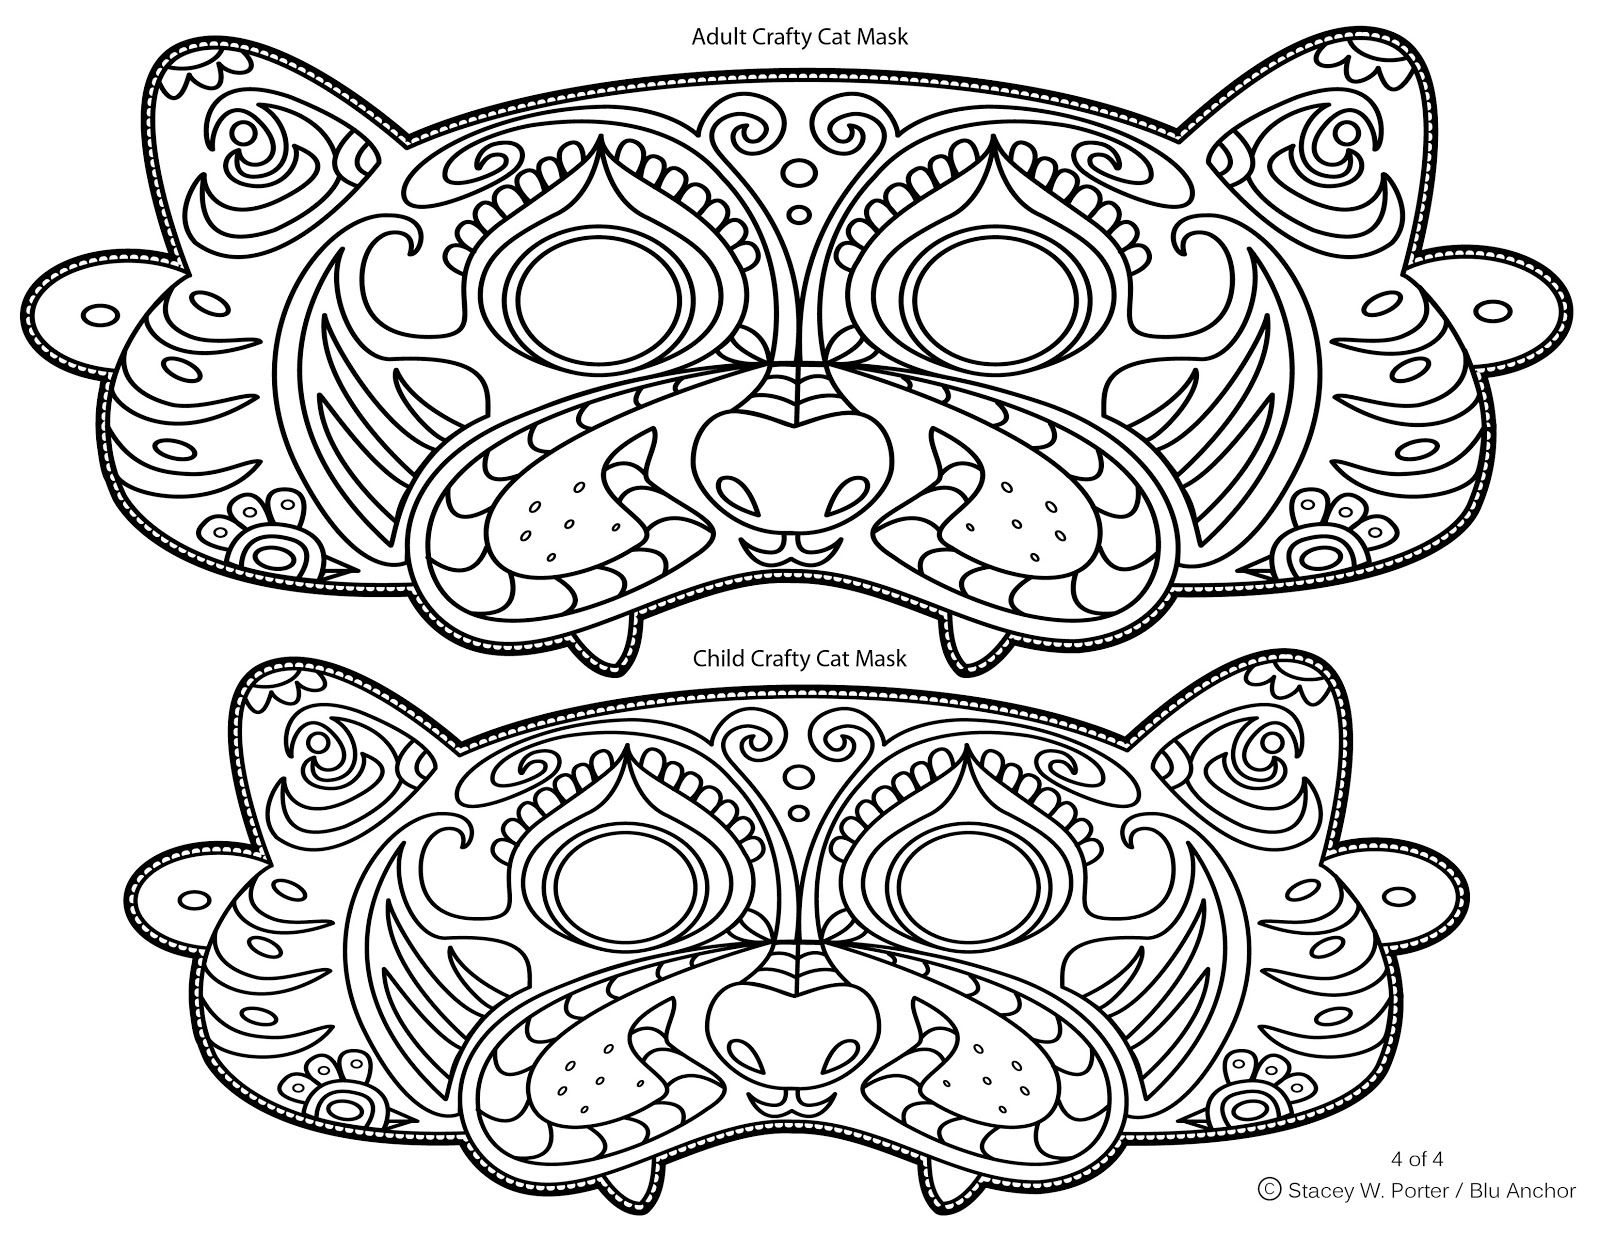 Free wearable Mask printable for adult and child. DIY